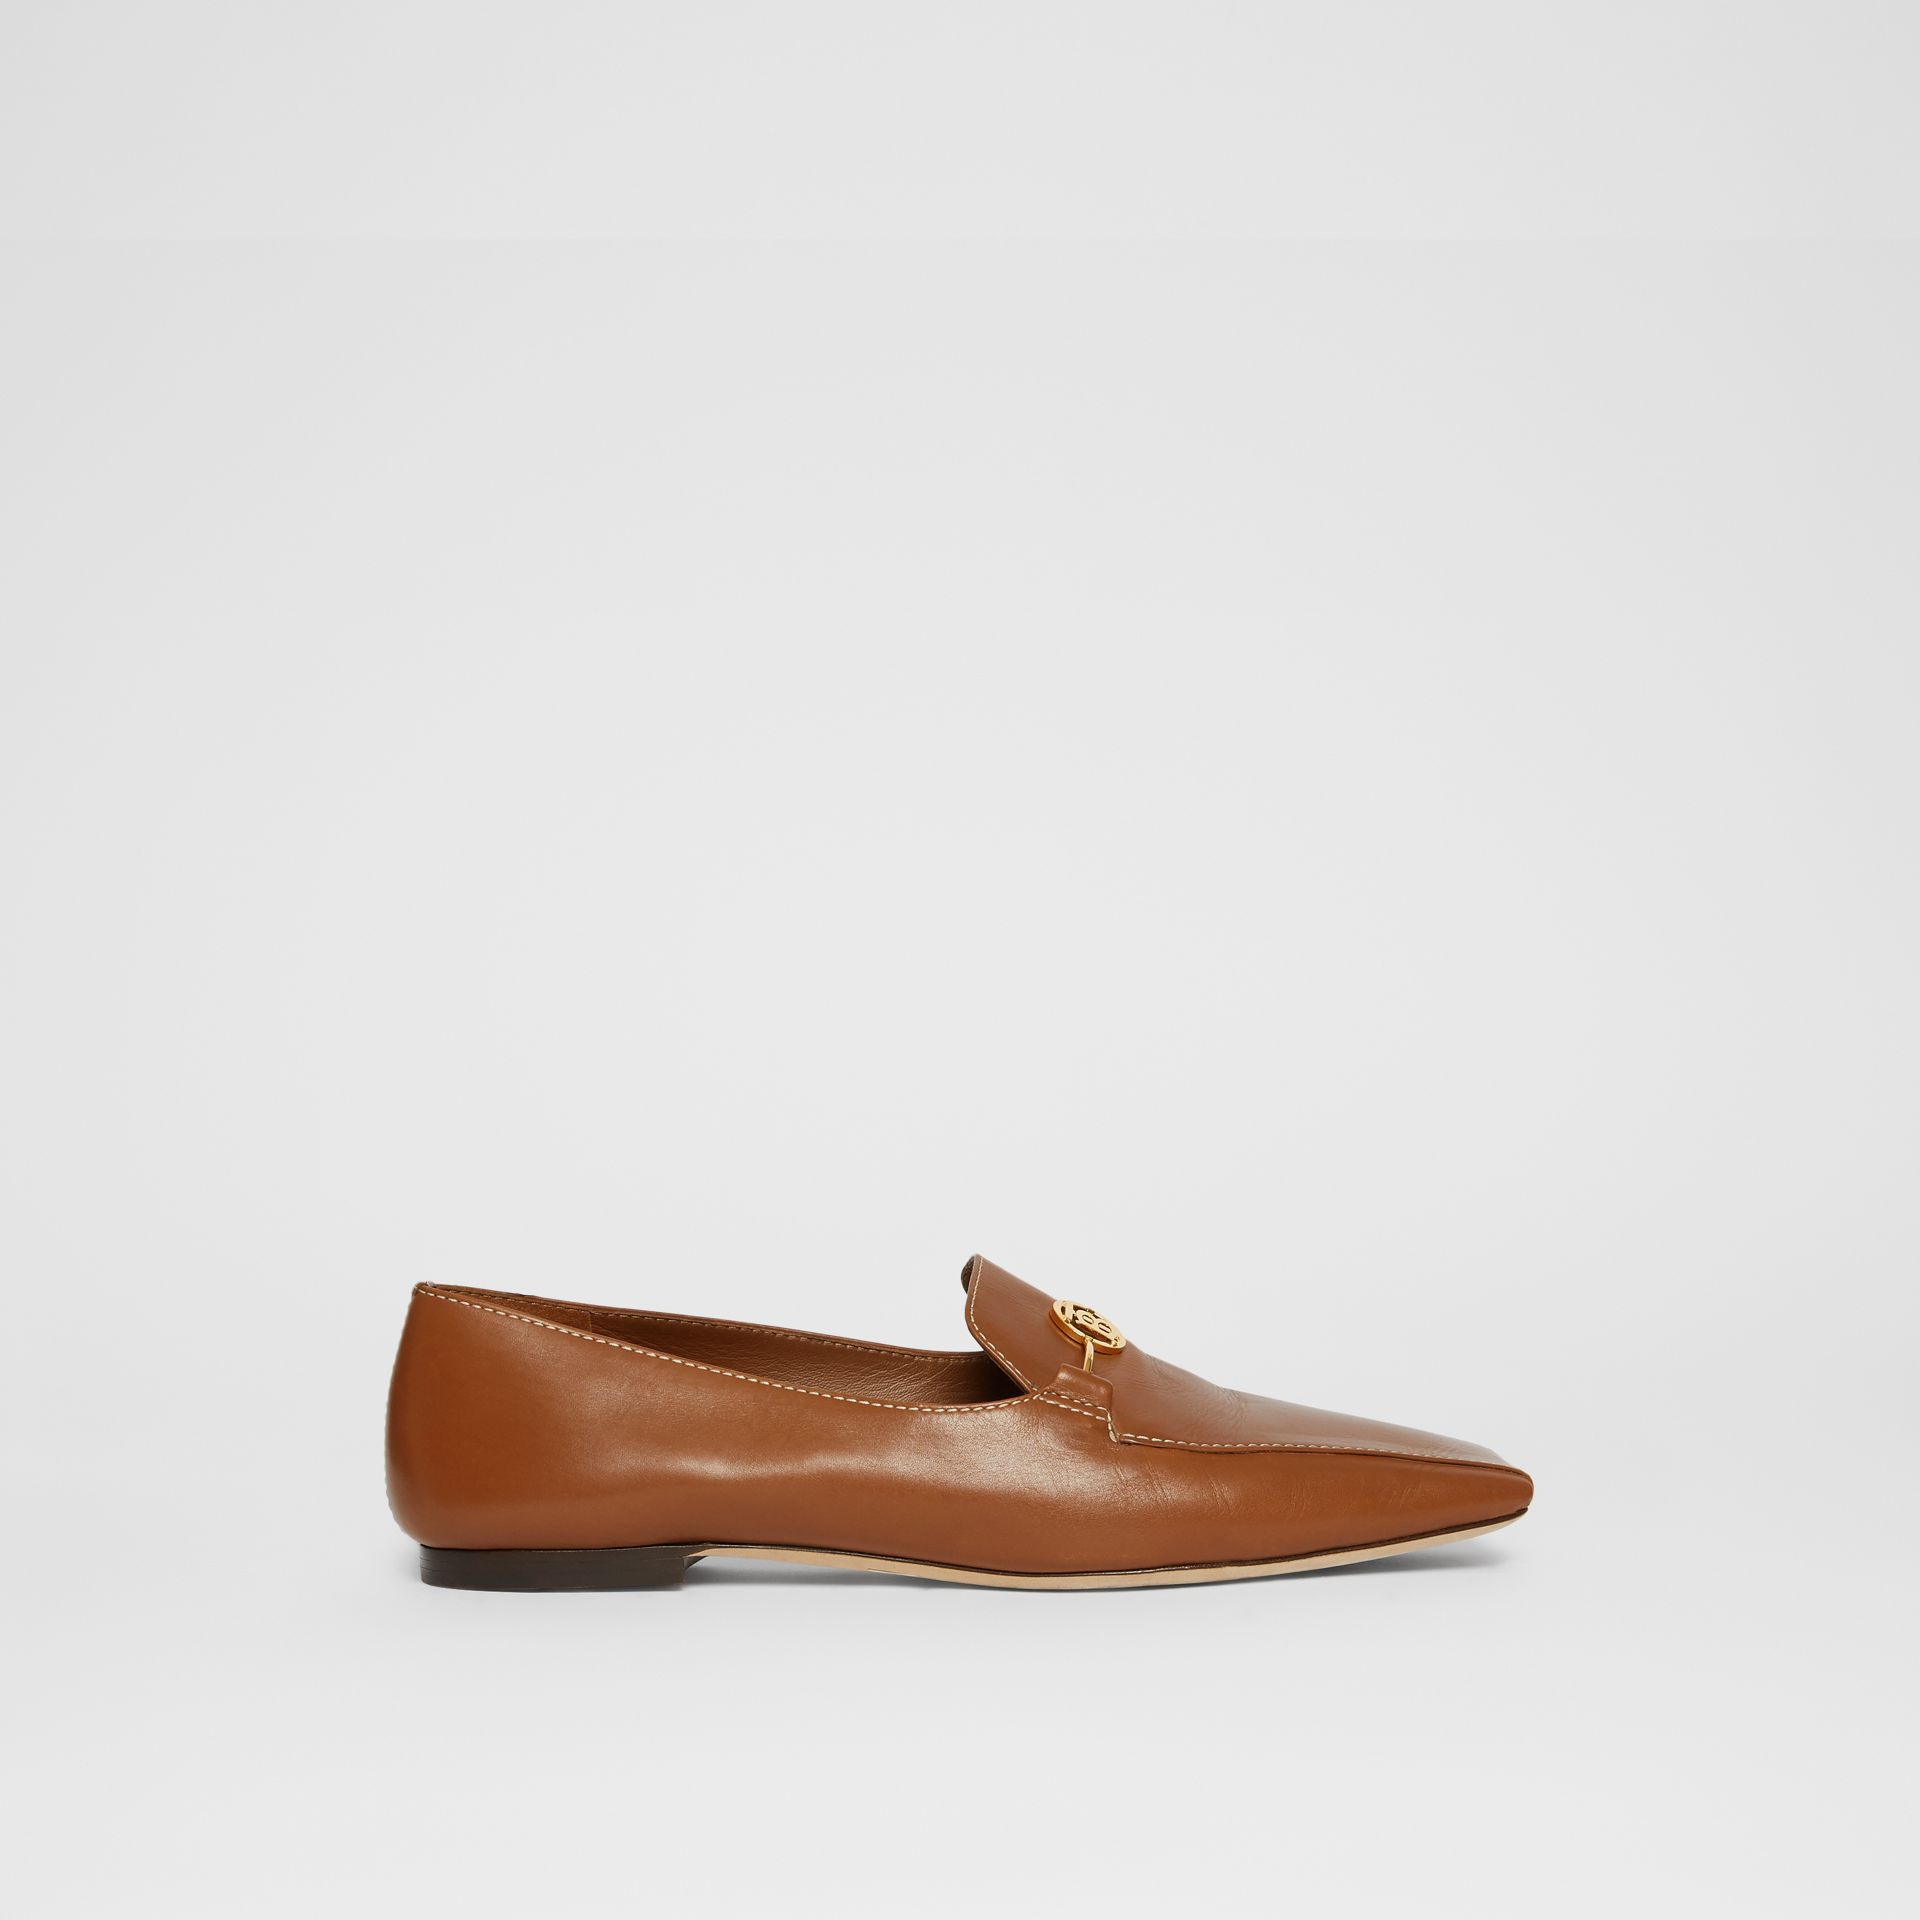 Monogram Motif Leather Loafers in Tan - Women | Burberry United Kingdom - gallery image 5